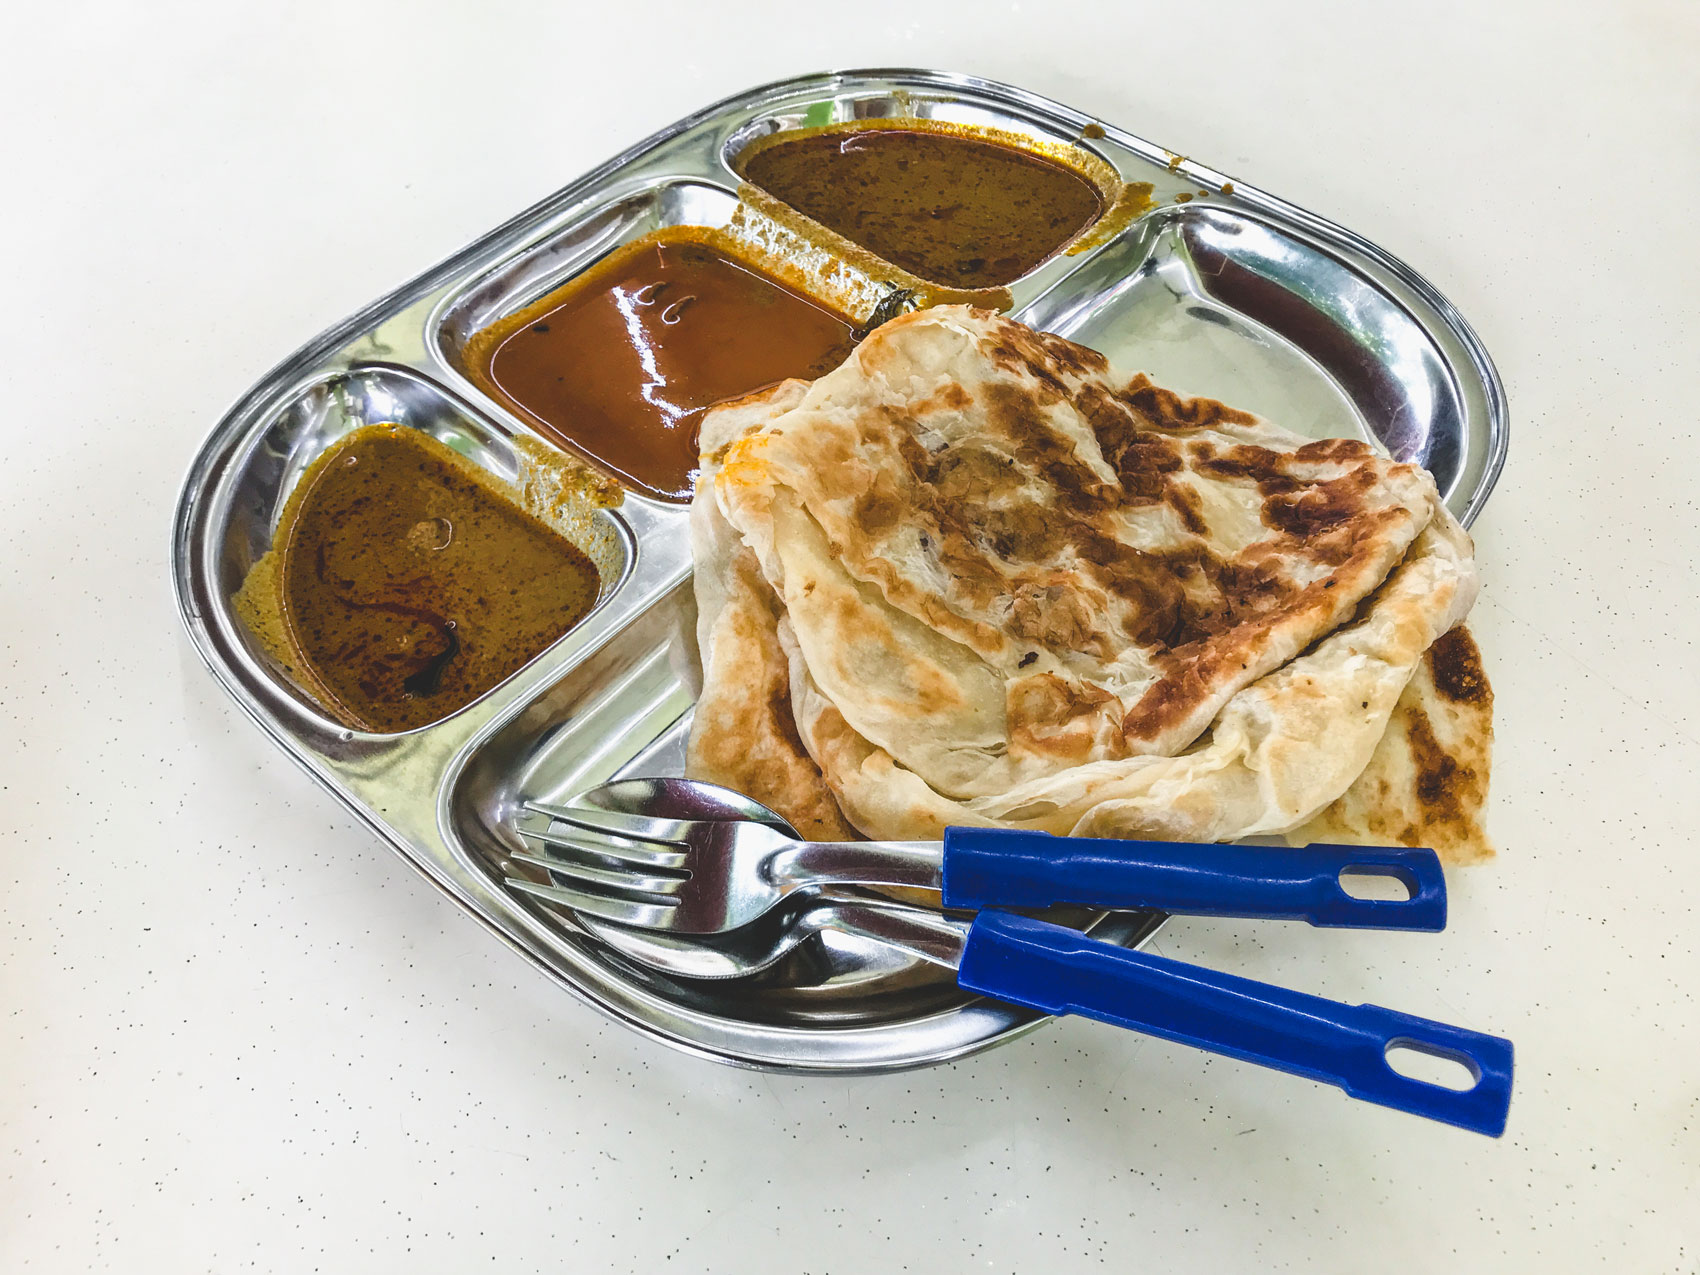 A silver tray filled with Roti John and a variety of sauces.